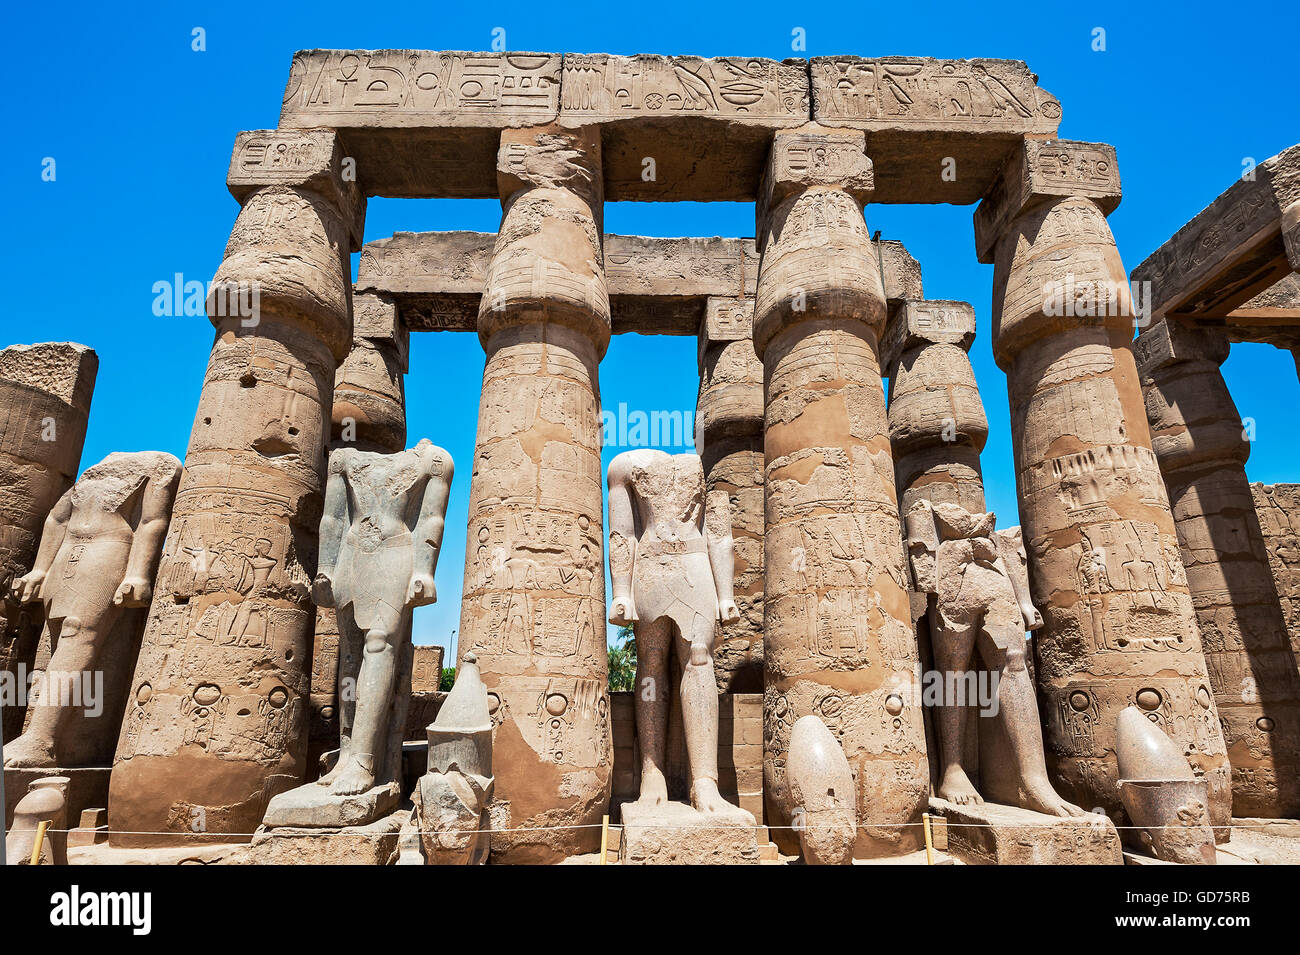 Badly damaged figures, Temple Complex Karnak Temple, Karnak, Luxor, Egypt - Stock Image